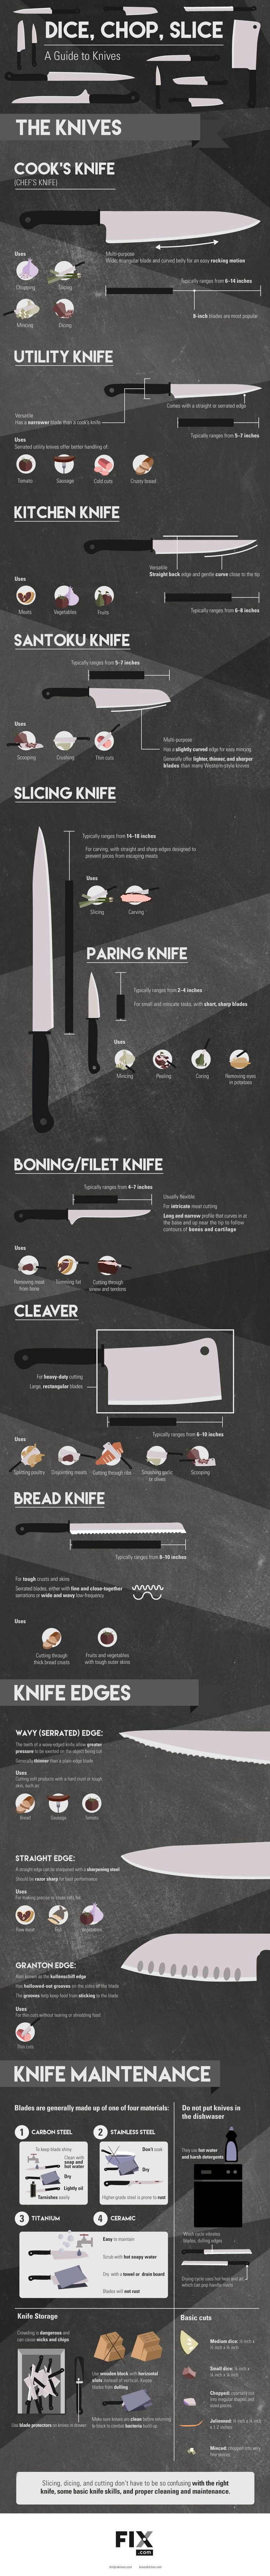 Dice, Chop, Slice A Guide to Knives #infographic